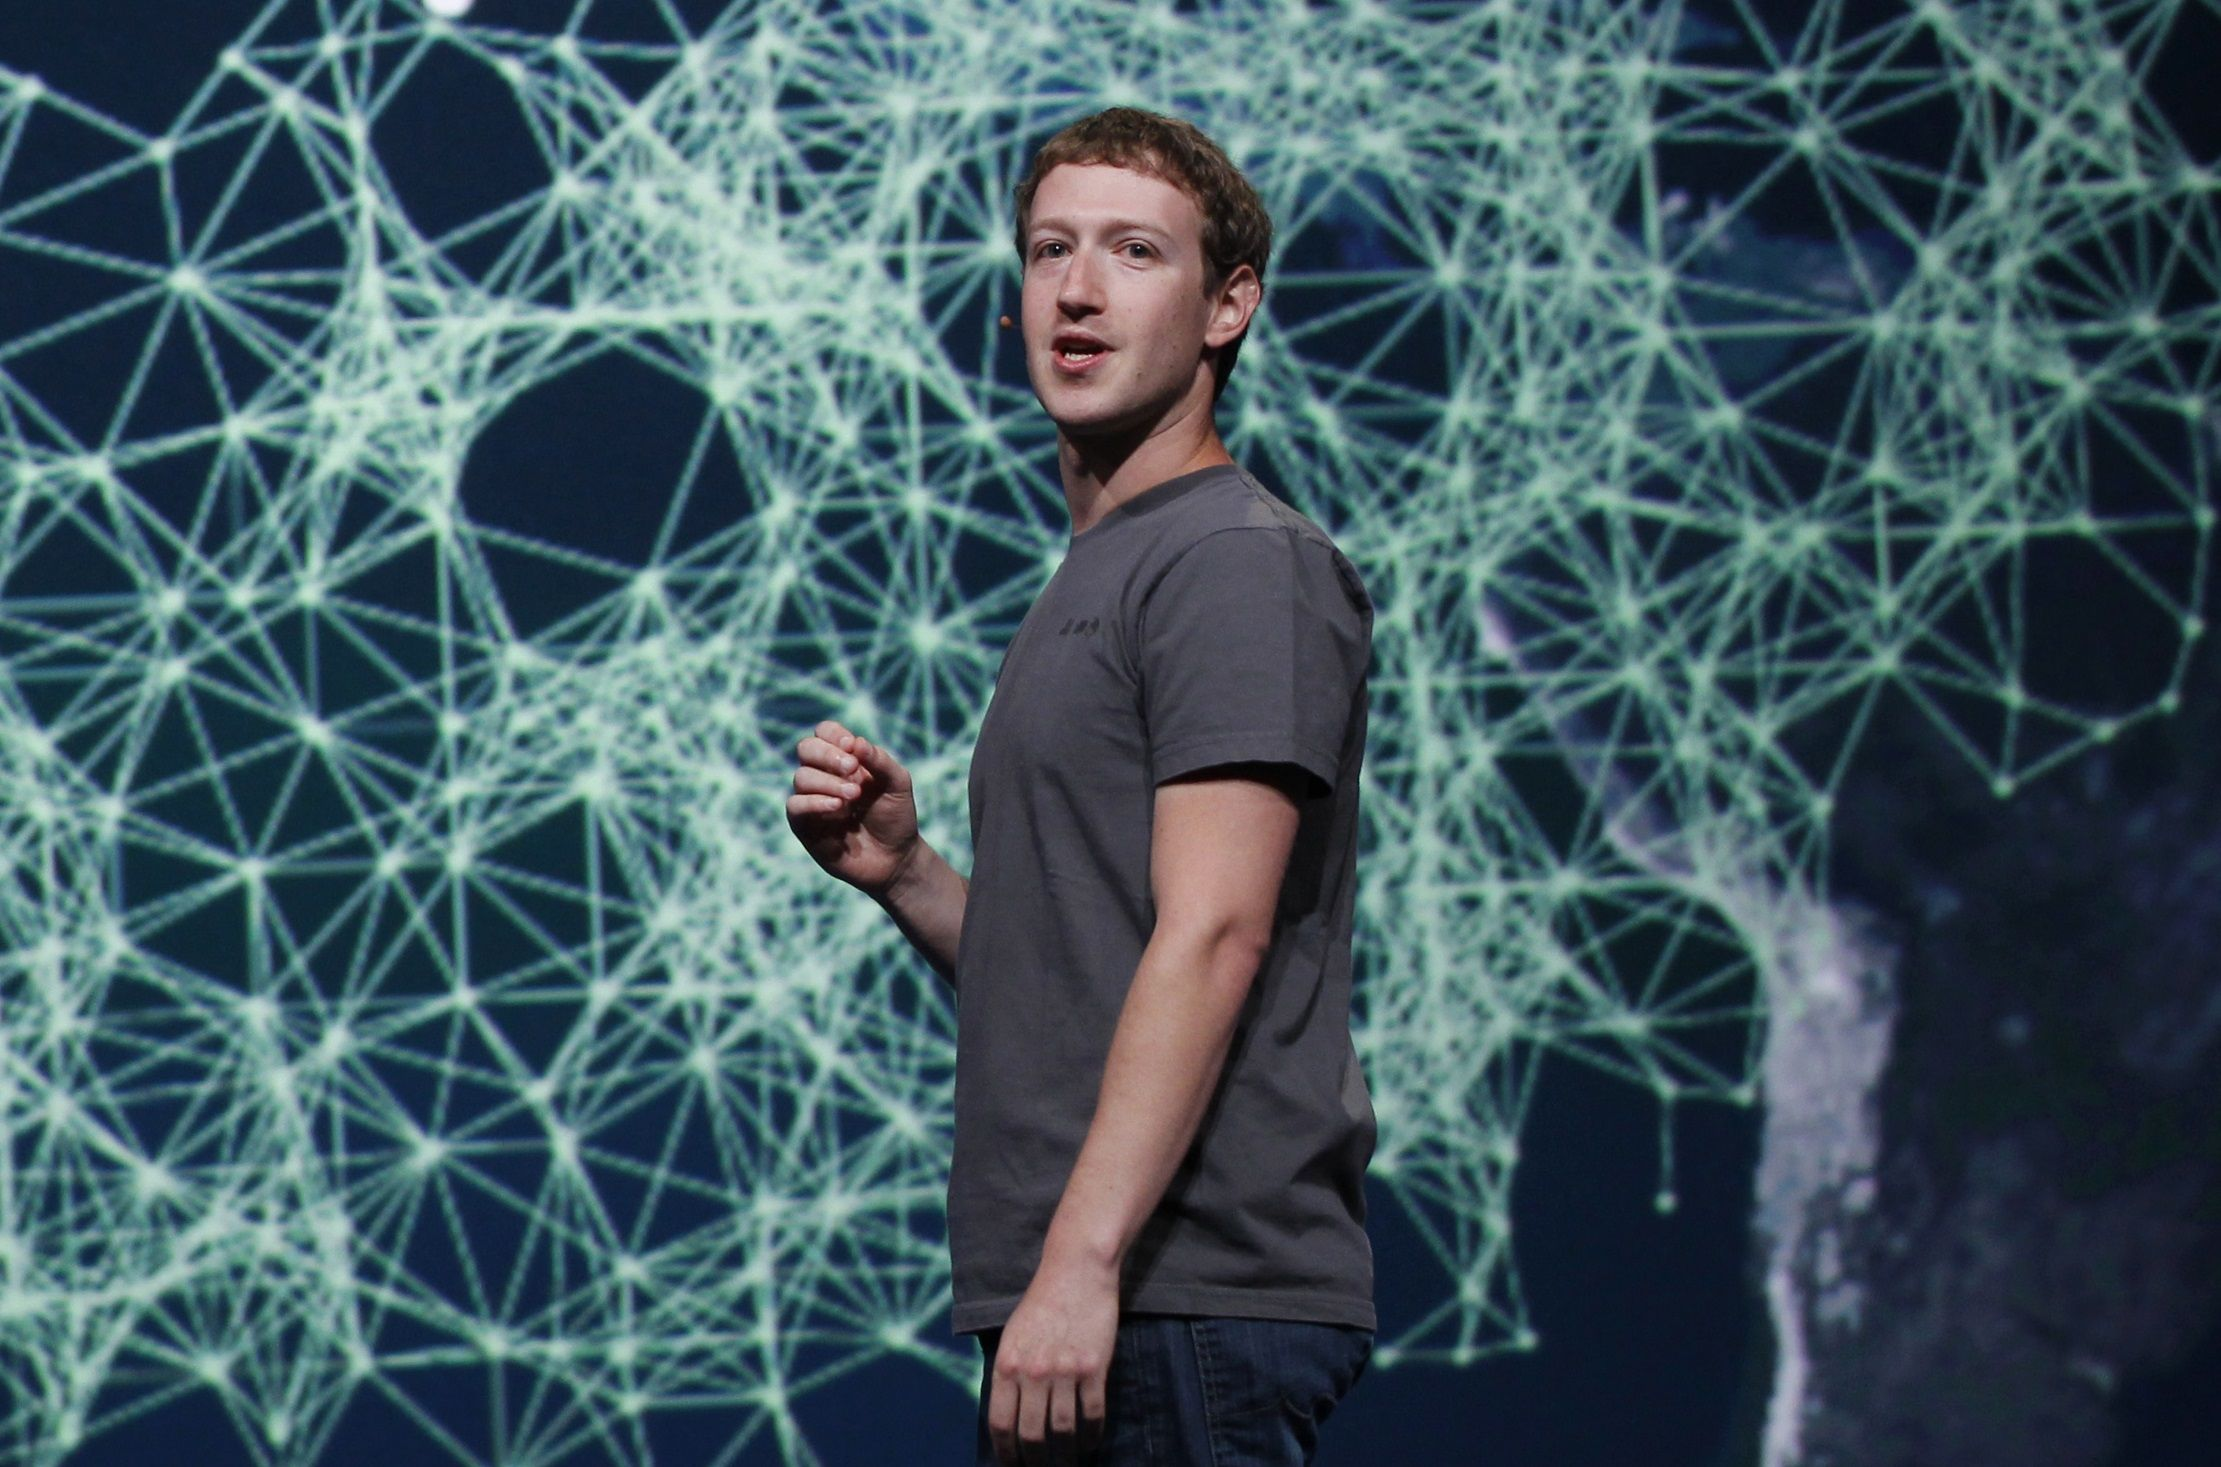 facebook six degrees of separation mark zuckerberg